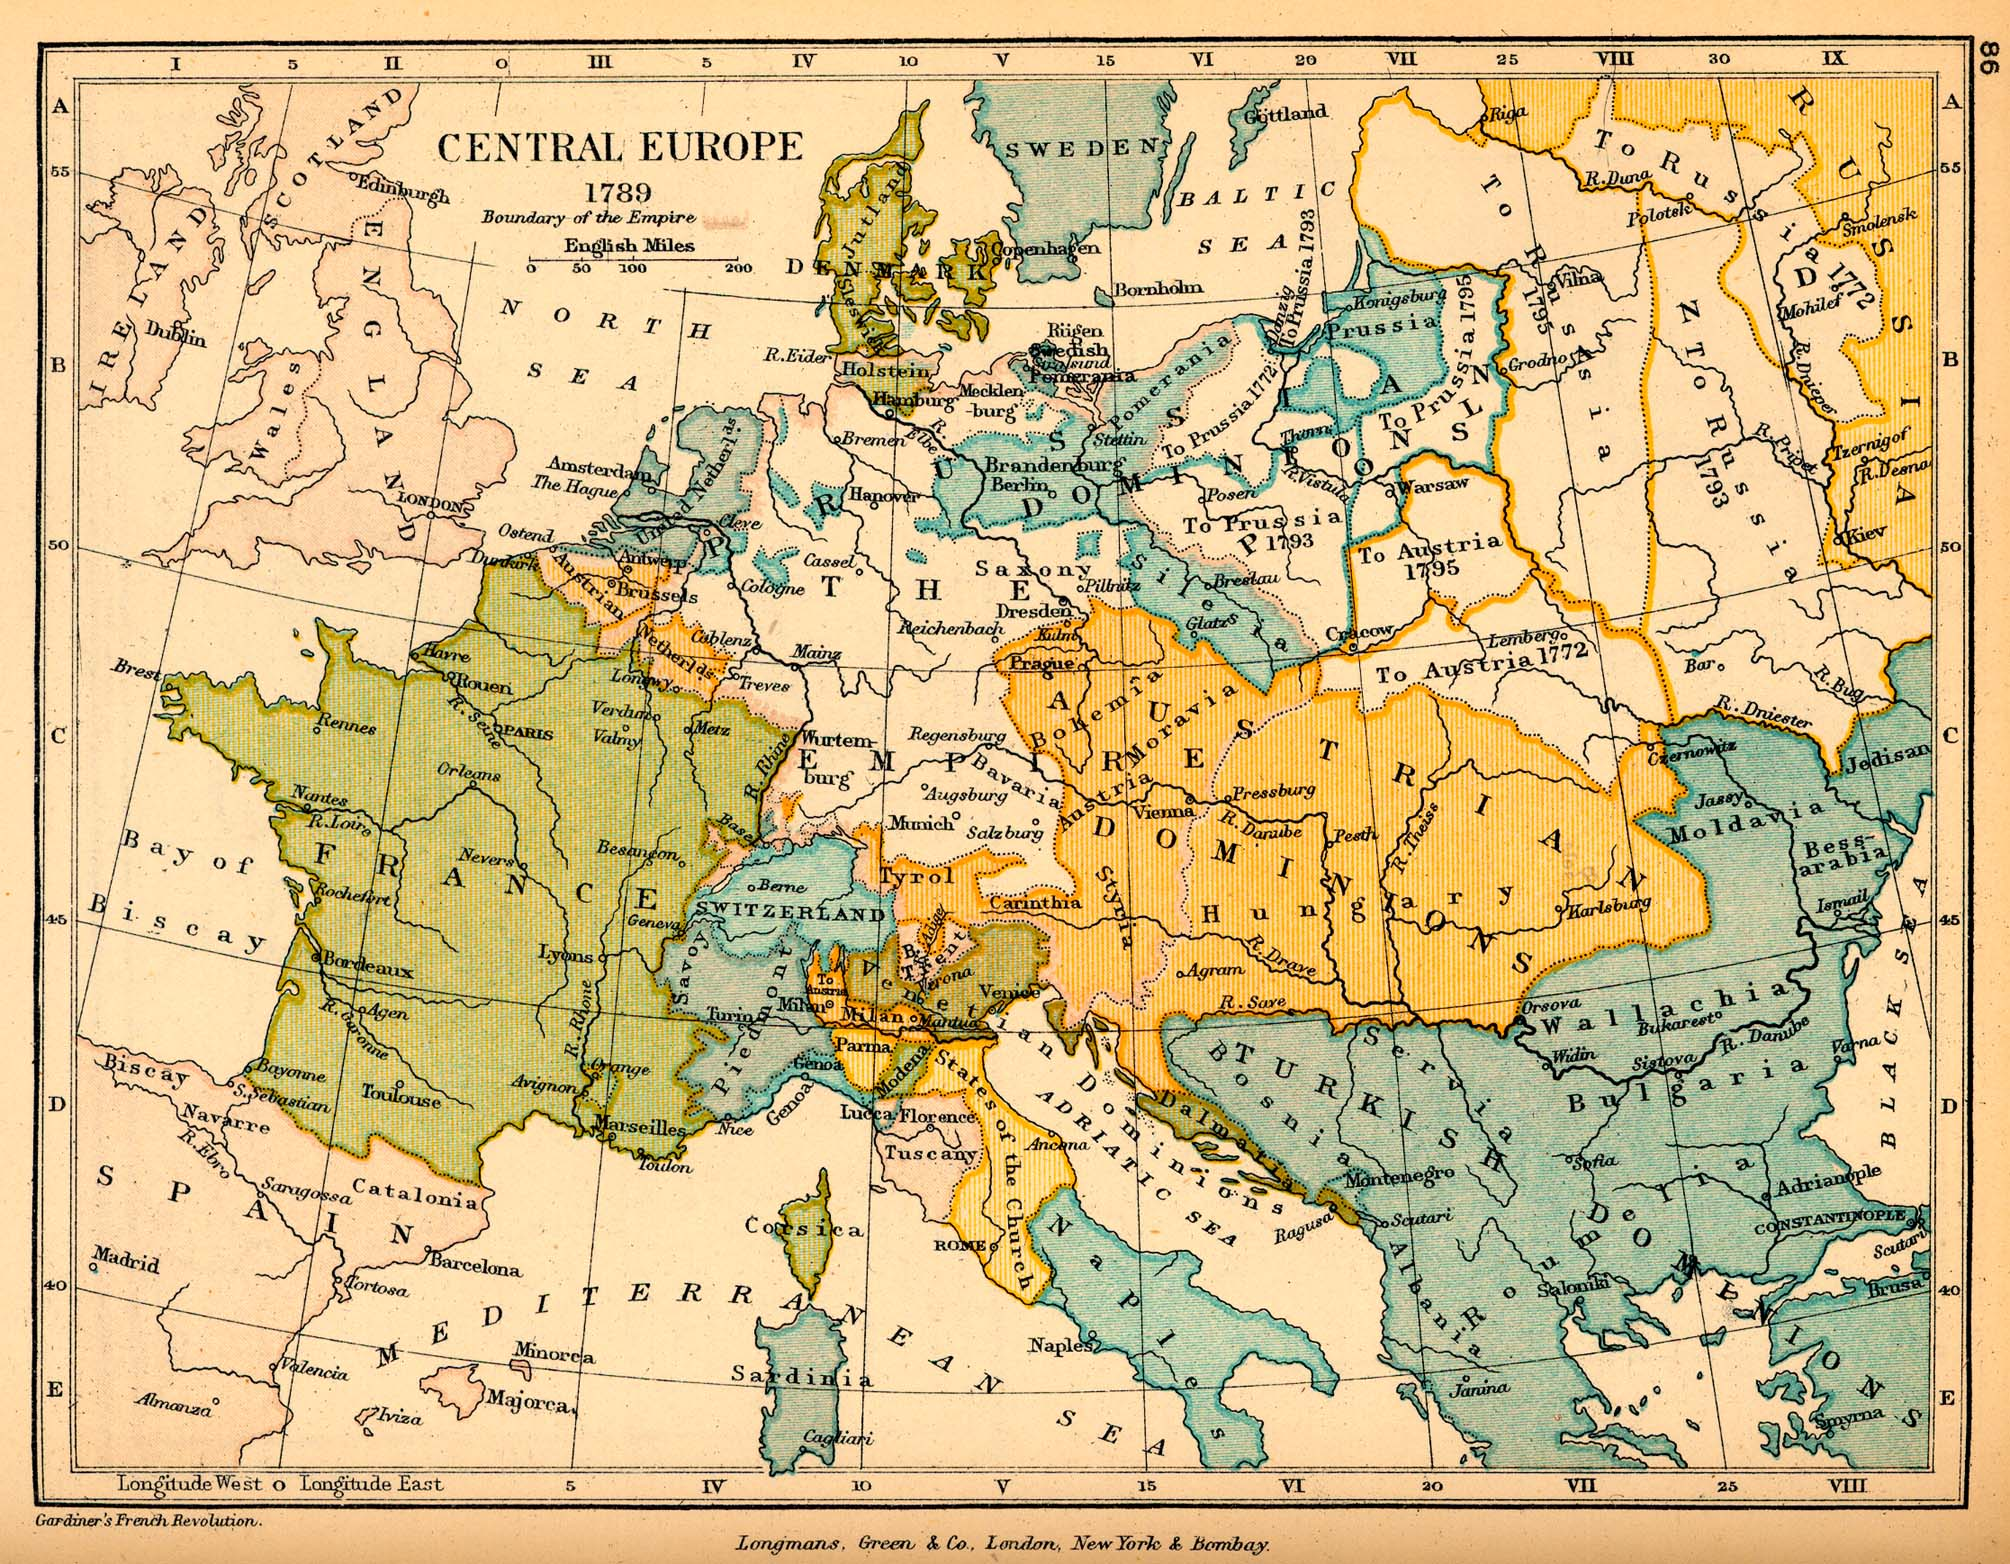 central europe in 1789